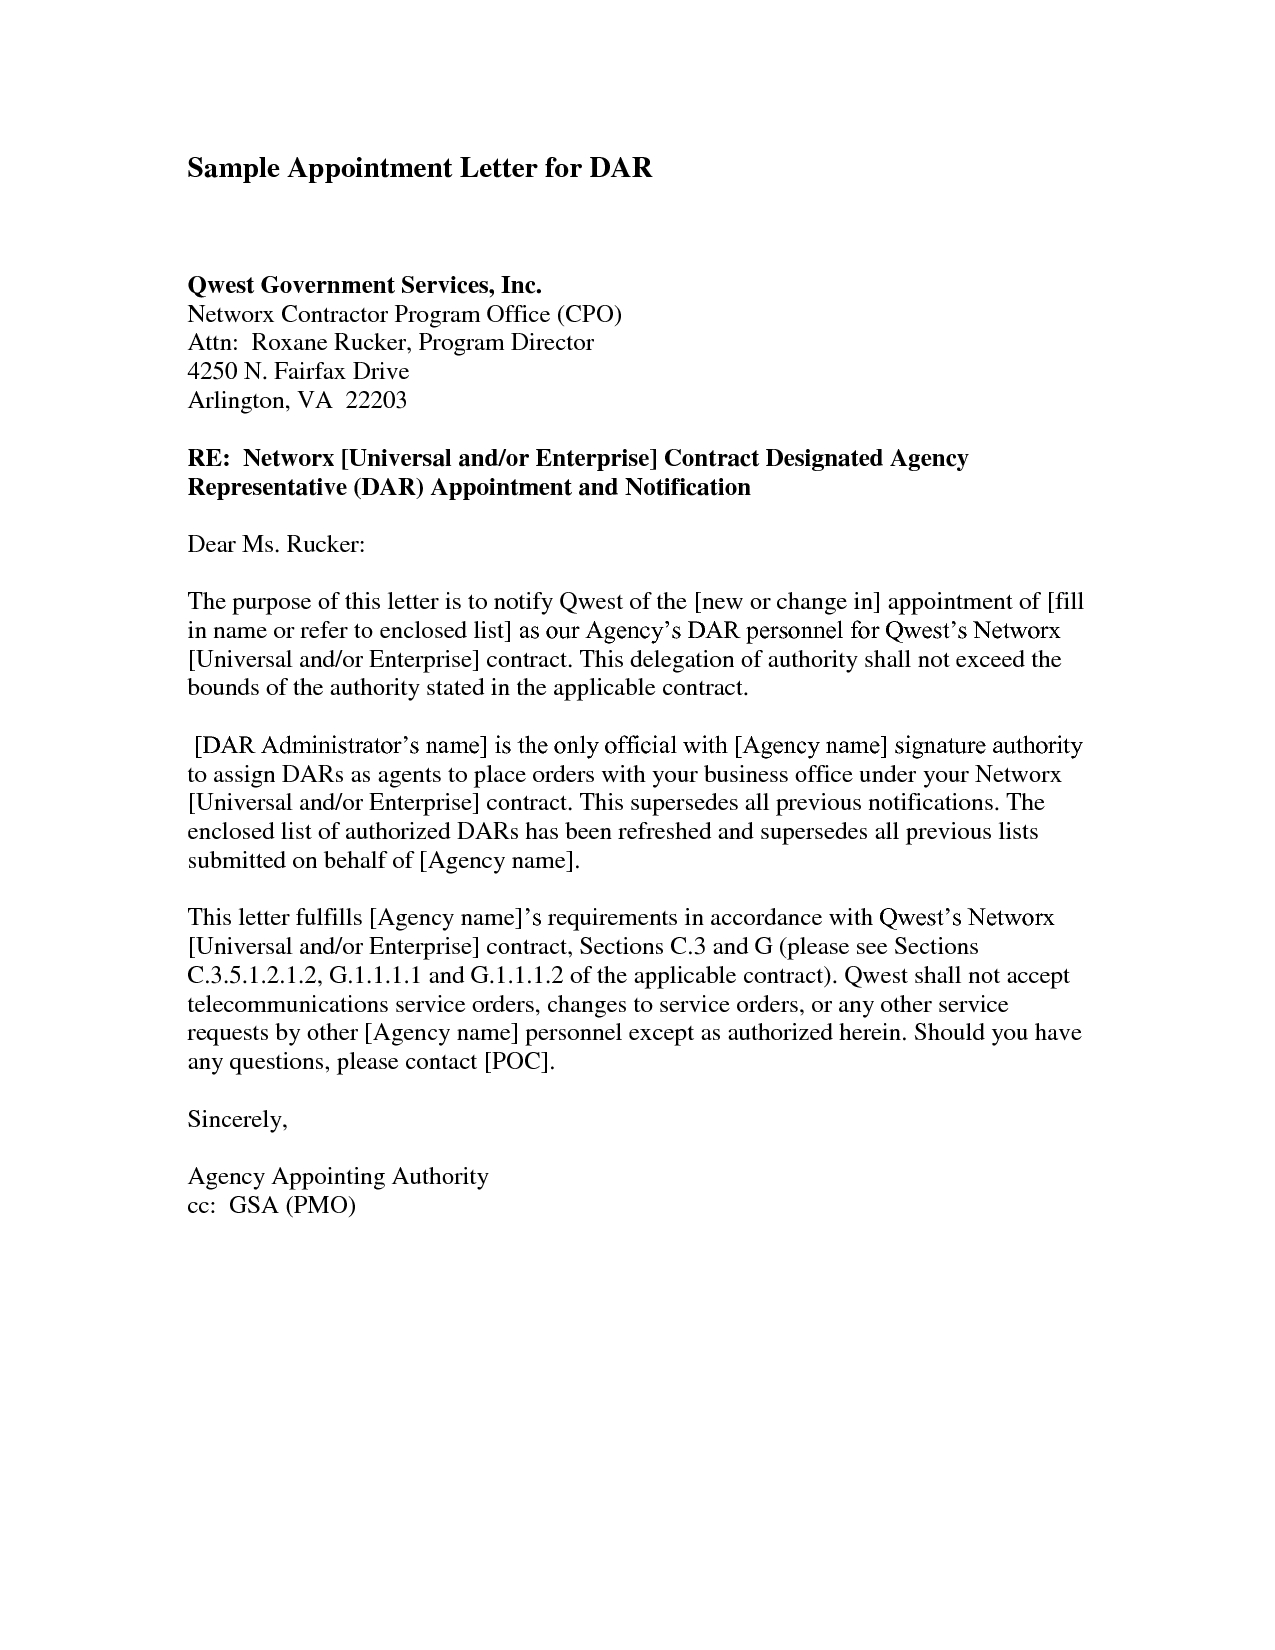 Startup Offer Letter Template - Trustee Appointment Letter Director Trustee is Appointed or